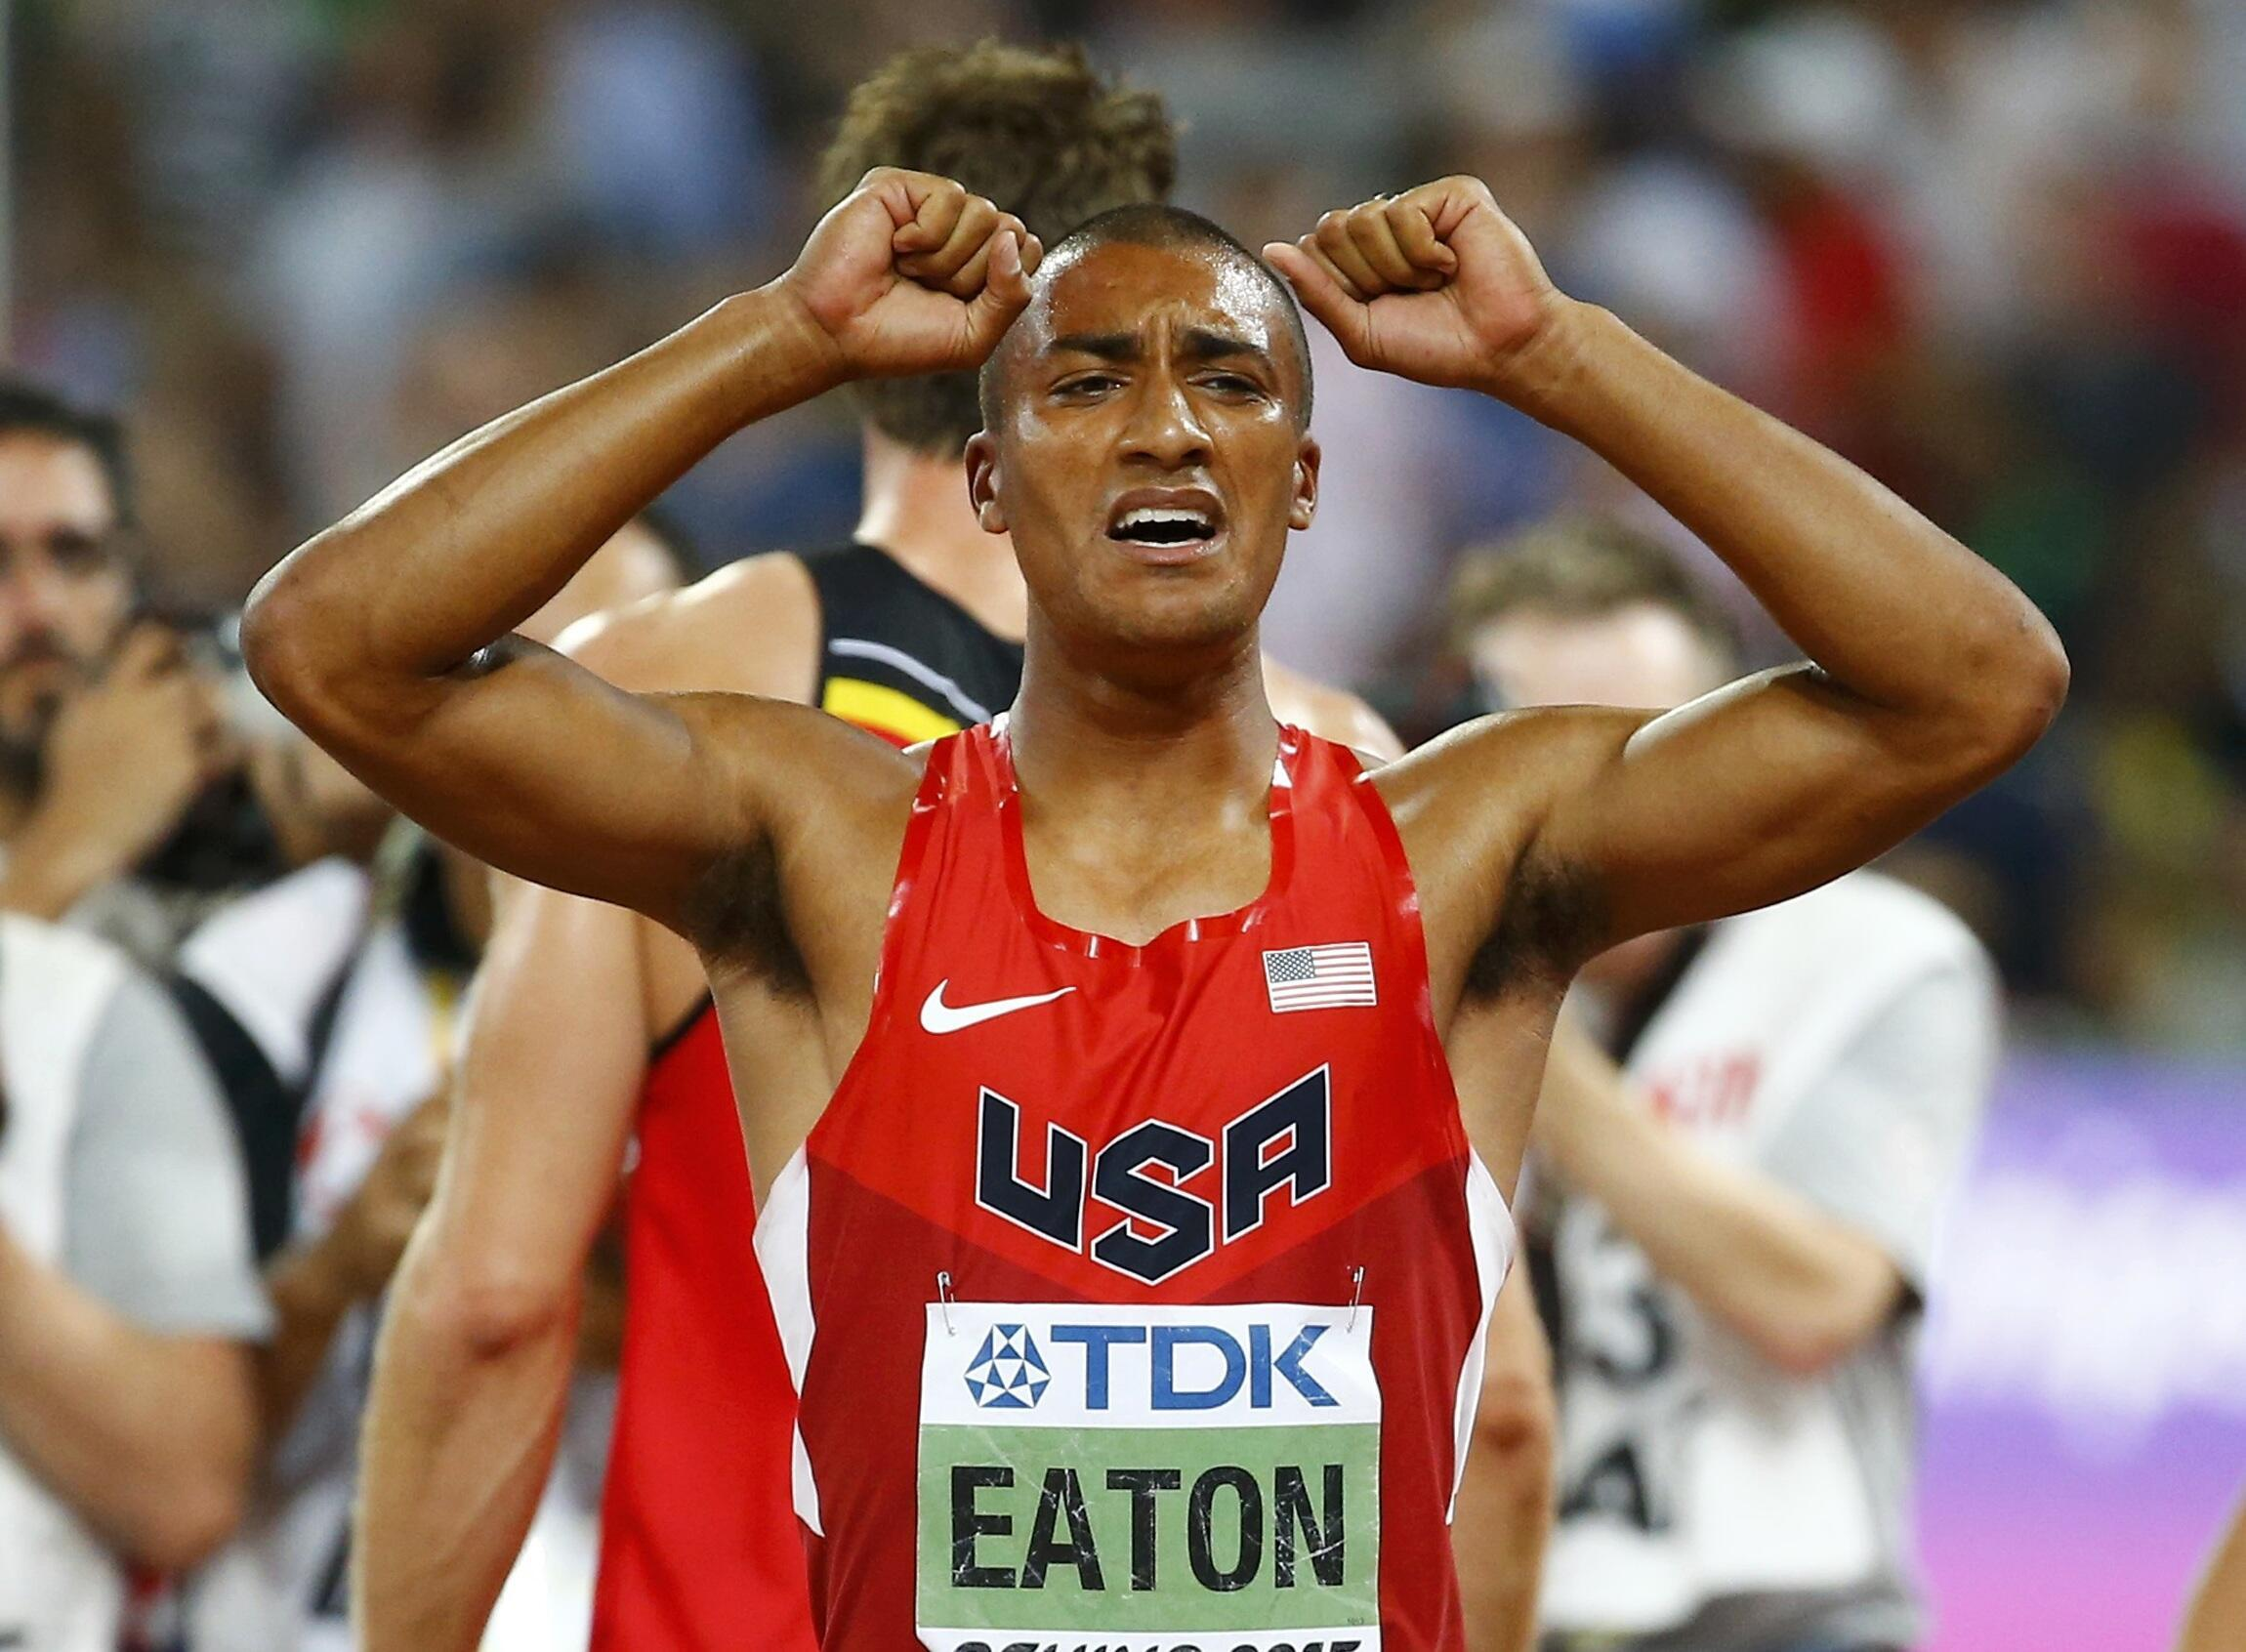 Ashton Eaton crosses the finish line in the 1500 metres decathlon at the 15th IAAF World Championships at the National Stadium in Beijing